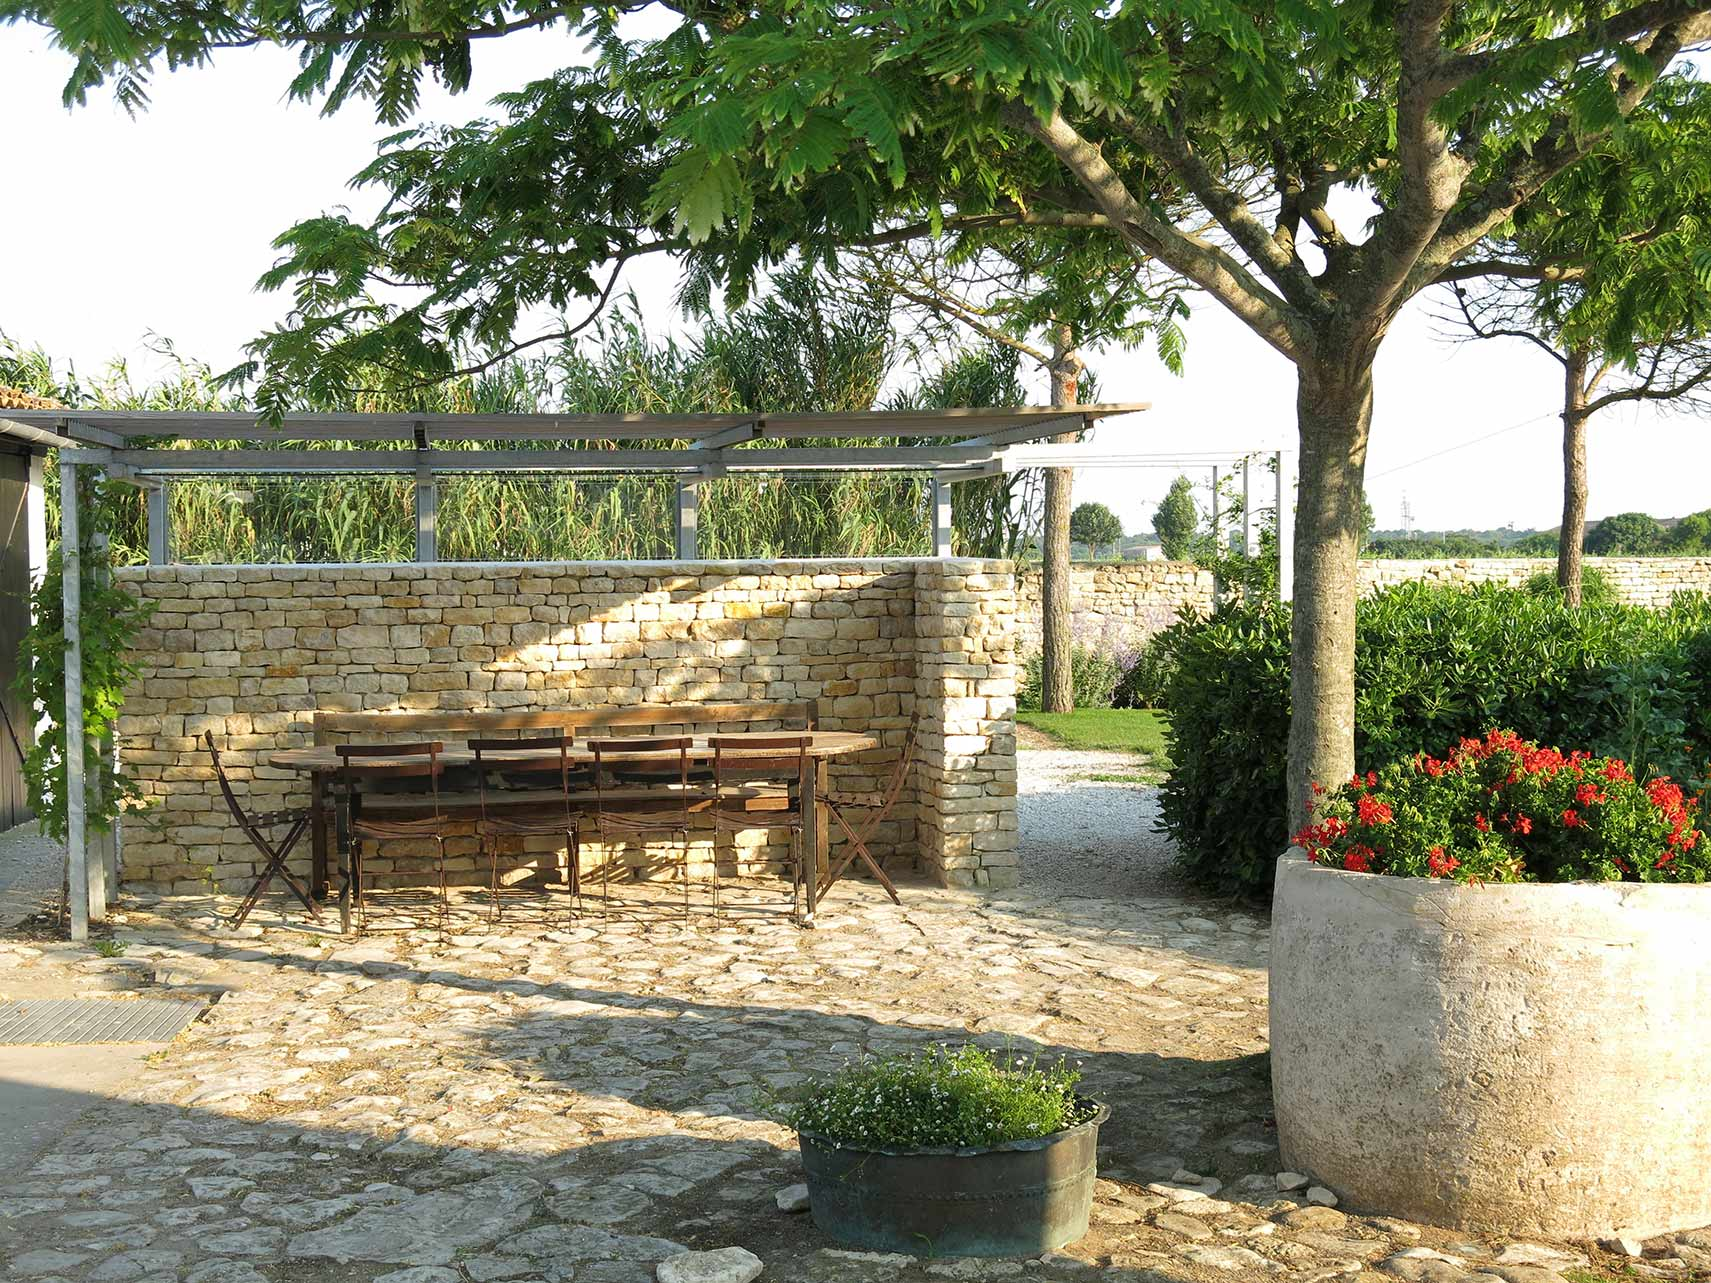 Outdoor table - Hotel Le Senechal Charente Maritime